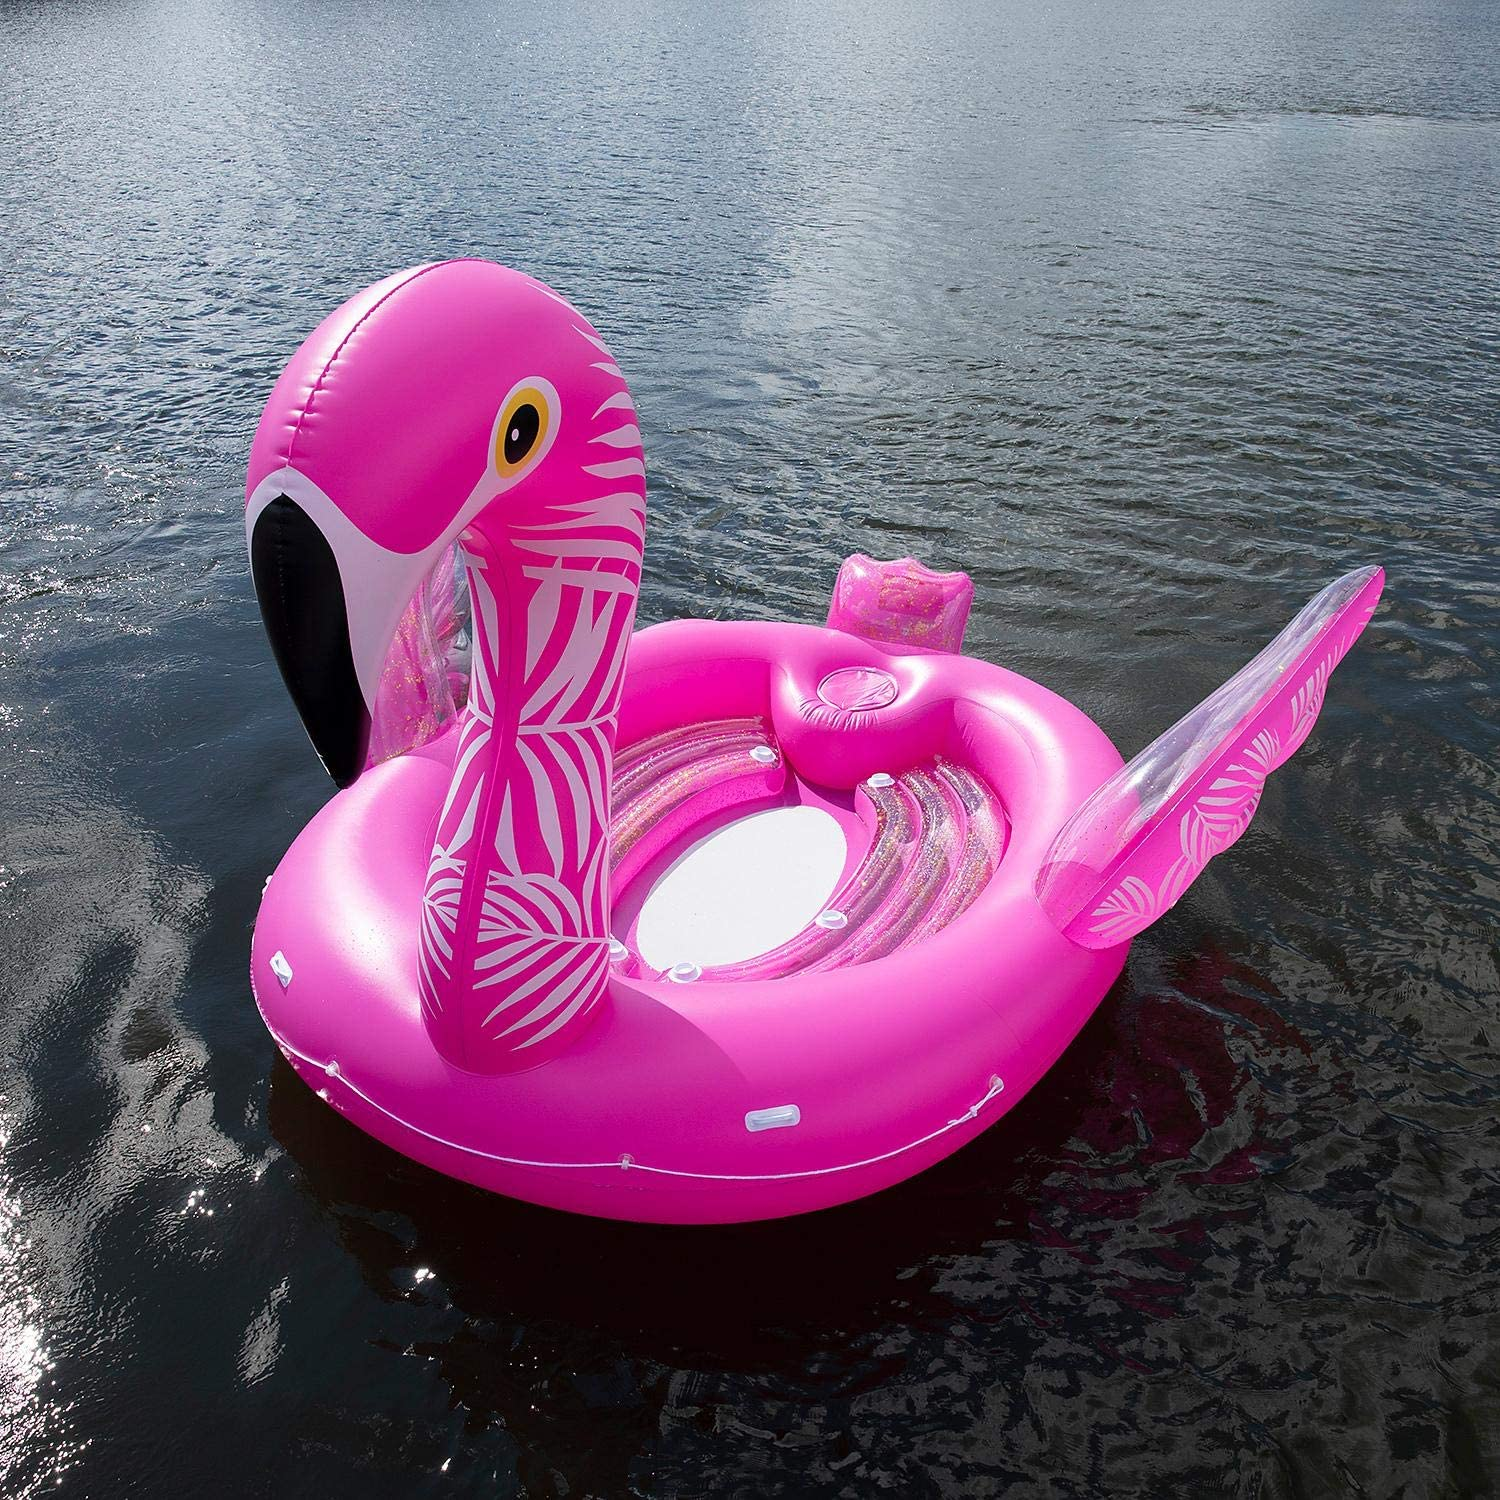 6-Person Inflatable Party Island Fanciful Flamingo